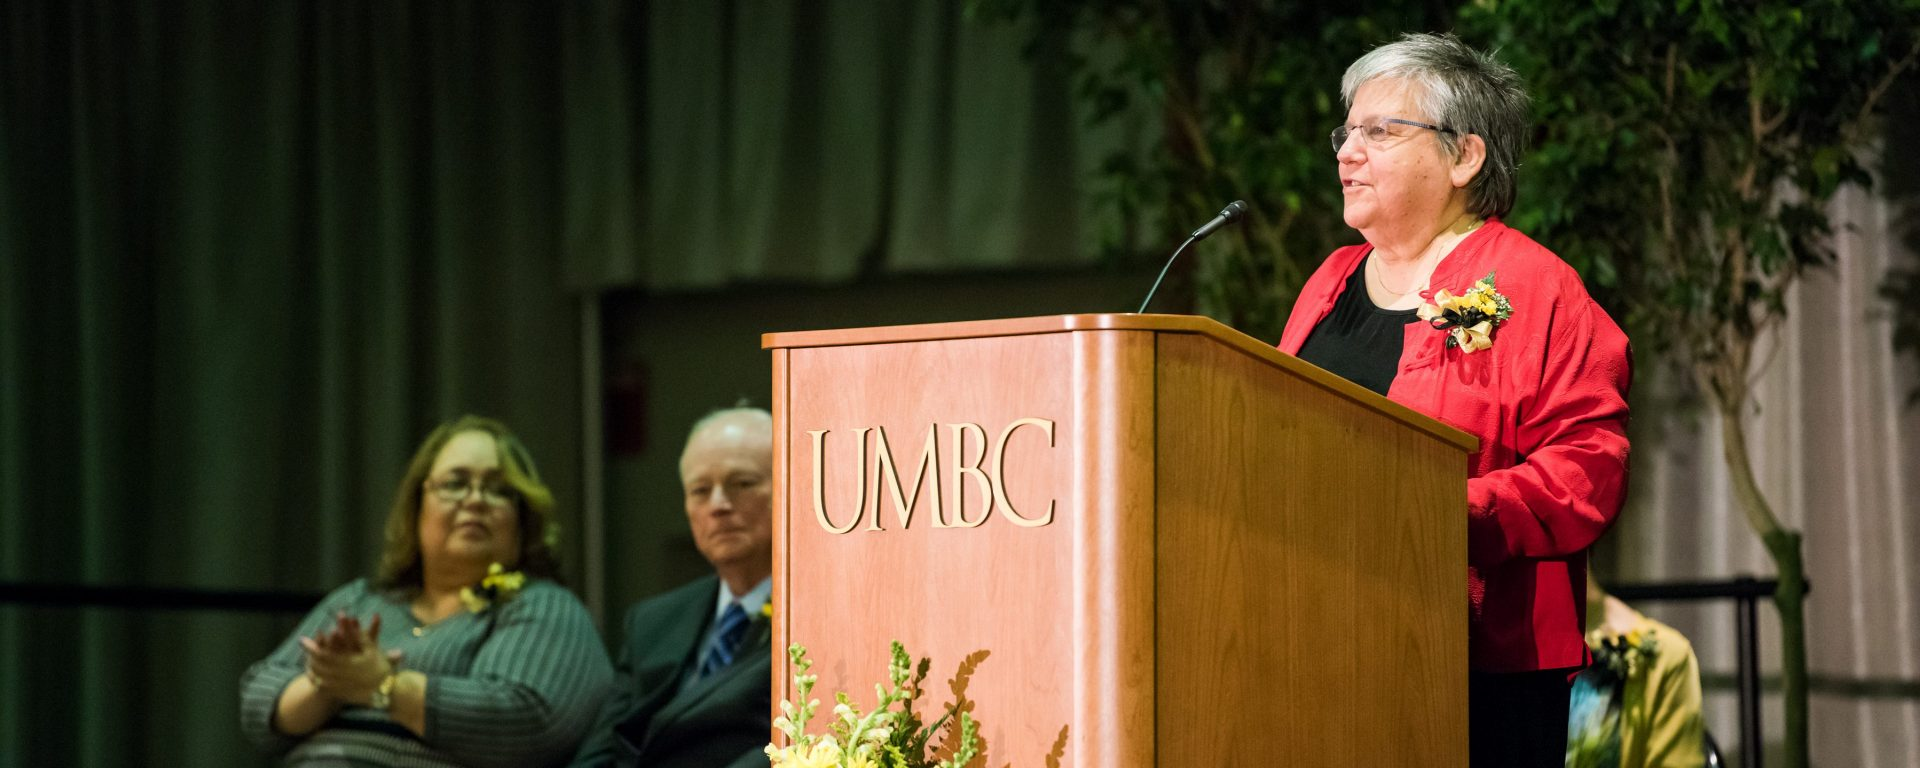 UMBC has named Phyllis Robinson, professor of biological sciences, the Robert and Jane Meyerhoff Chair of Biological Sciences.